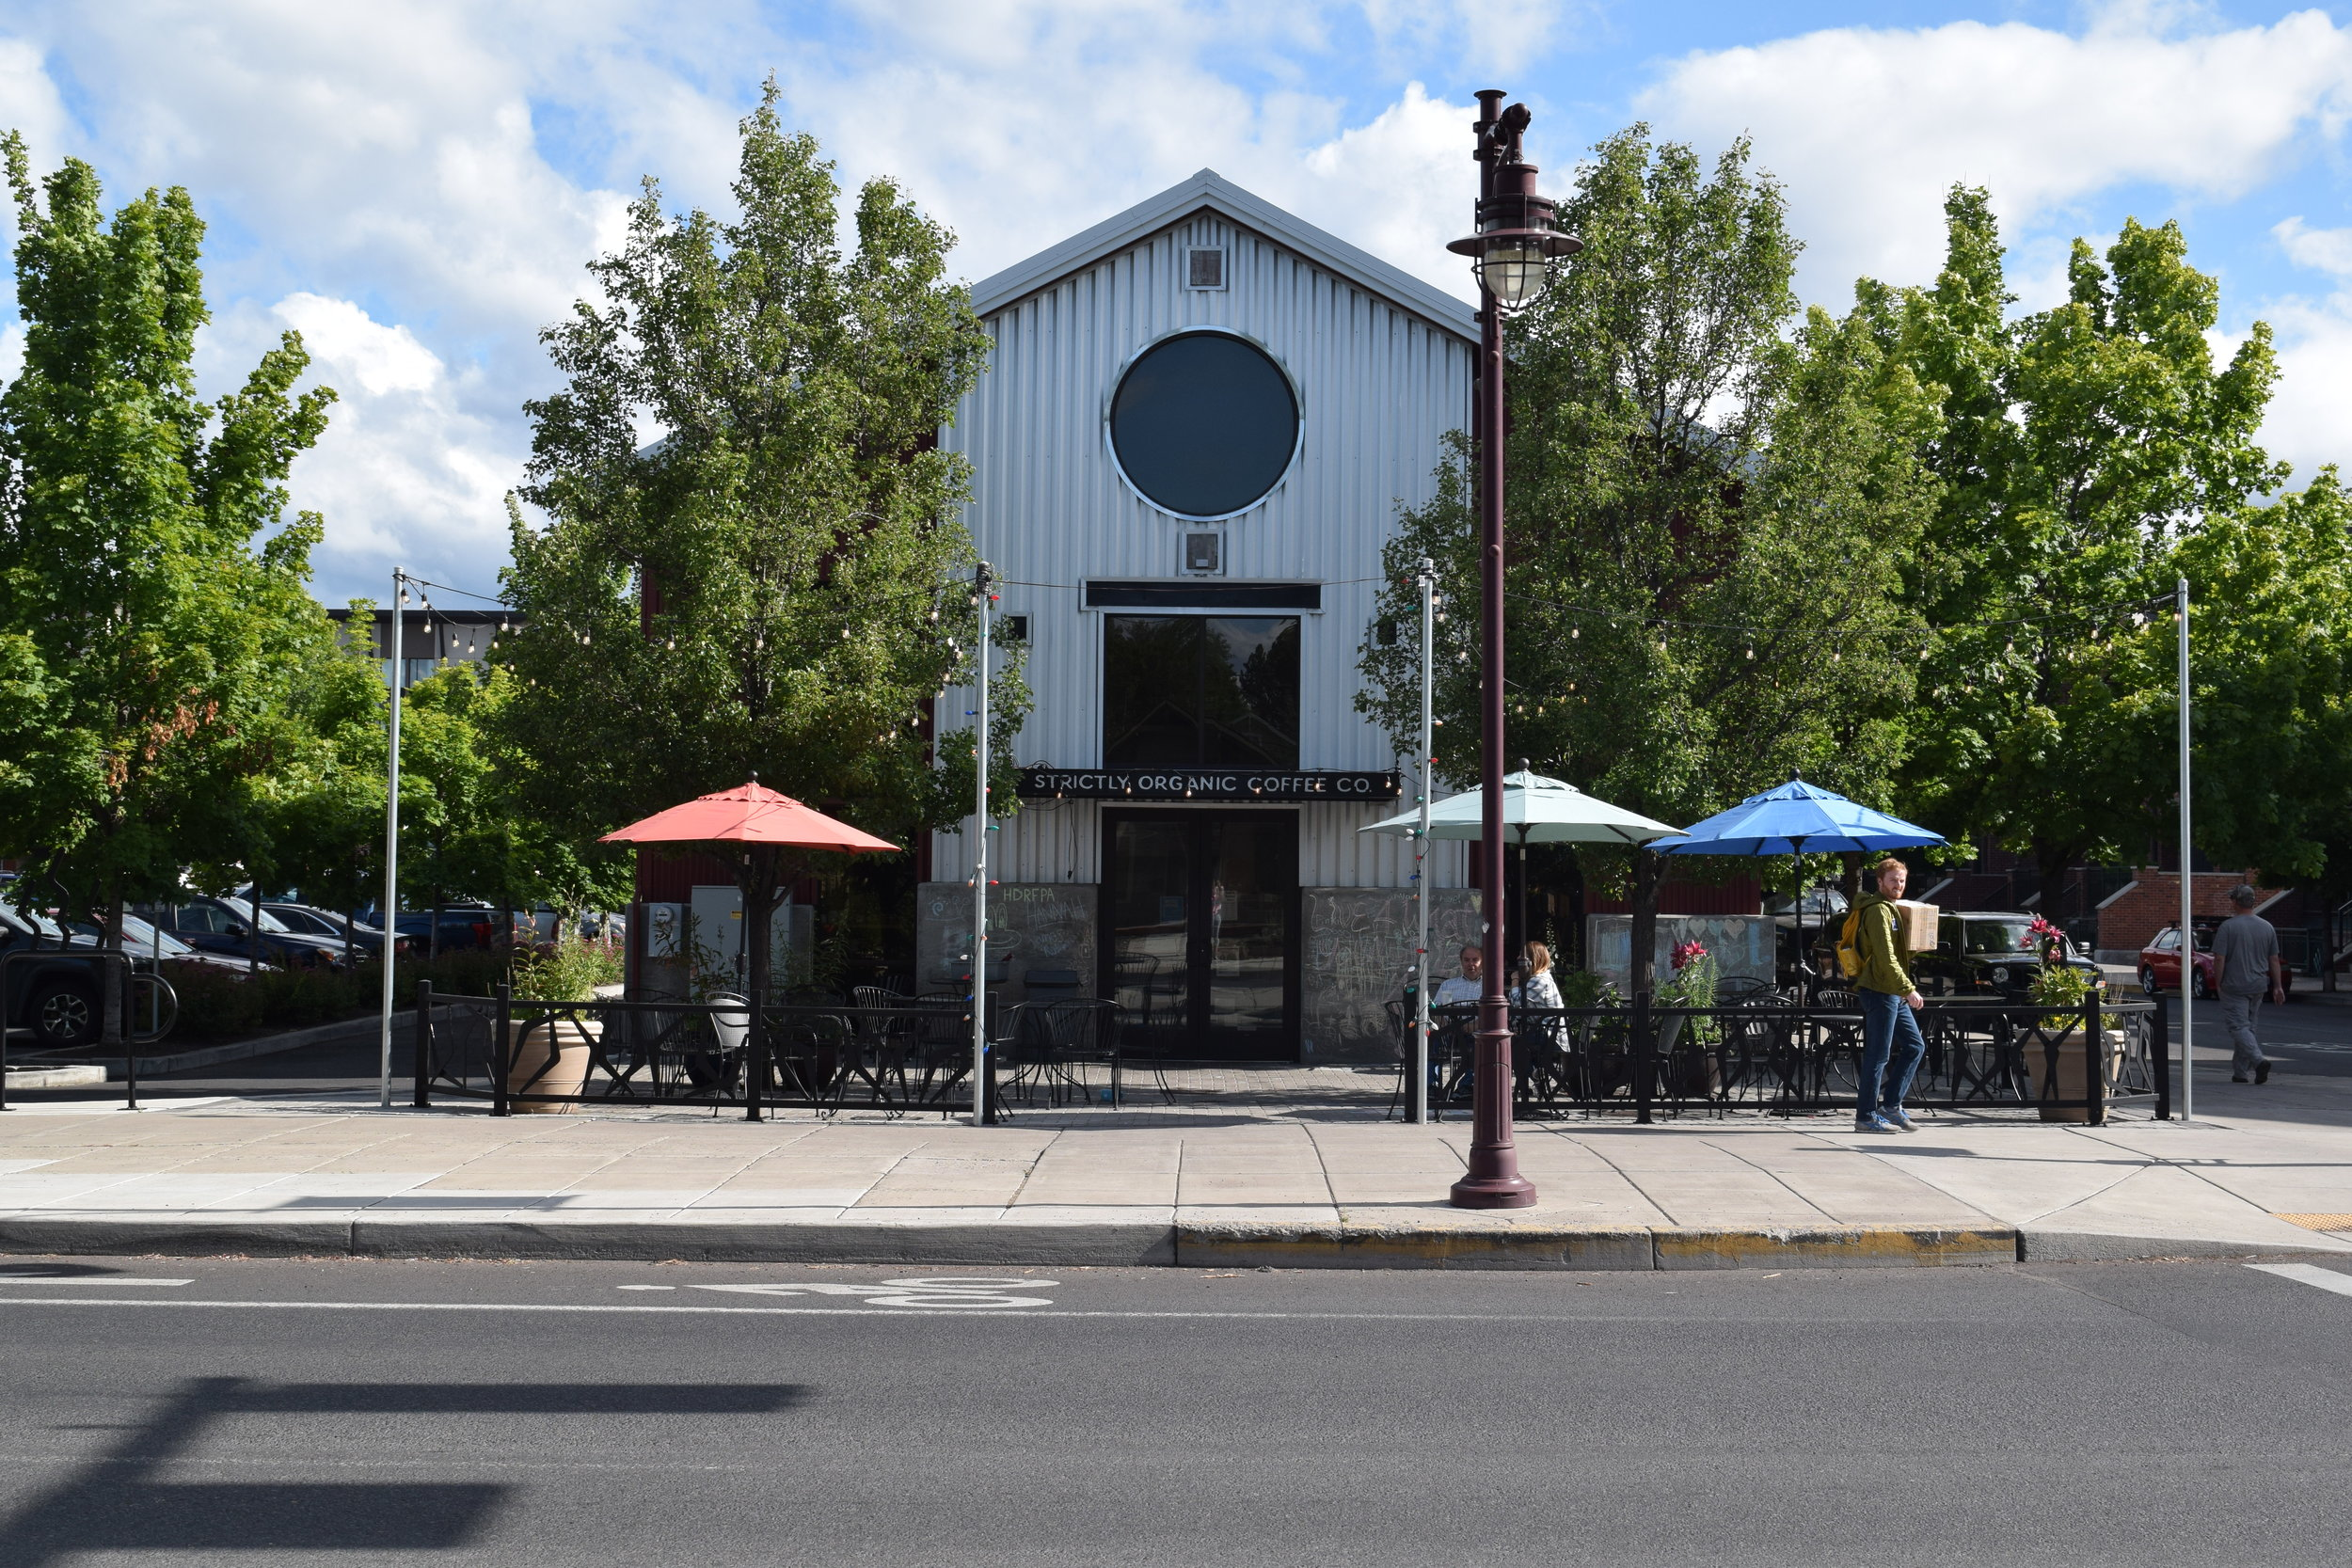 Strictly Organic Coffee Co. - 6 SW Bond St., Bend, OR & 450 SW Powerhouse Dr., Bend, OROfficial BYOC Bend Supporting Business since May 2019BYOC for a $0.20 discountSince 1999, proud owners of Strictly Organic Coffee Company Richard and Rhonda have maintained their values of serving organic and fair trade foods and following environmentally sustainable practices. Strictly O has received many awards recognizing these environmental efforts and also to its commitment and support to its employees, customers and the rest of the Bend community. Enjoy all day breakfast, lunch or dinner with a cup of 100% certified organic and fair-trade coffee situated in a dynamic and upbeat environment at either the Box Factory of Old Mill location.